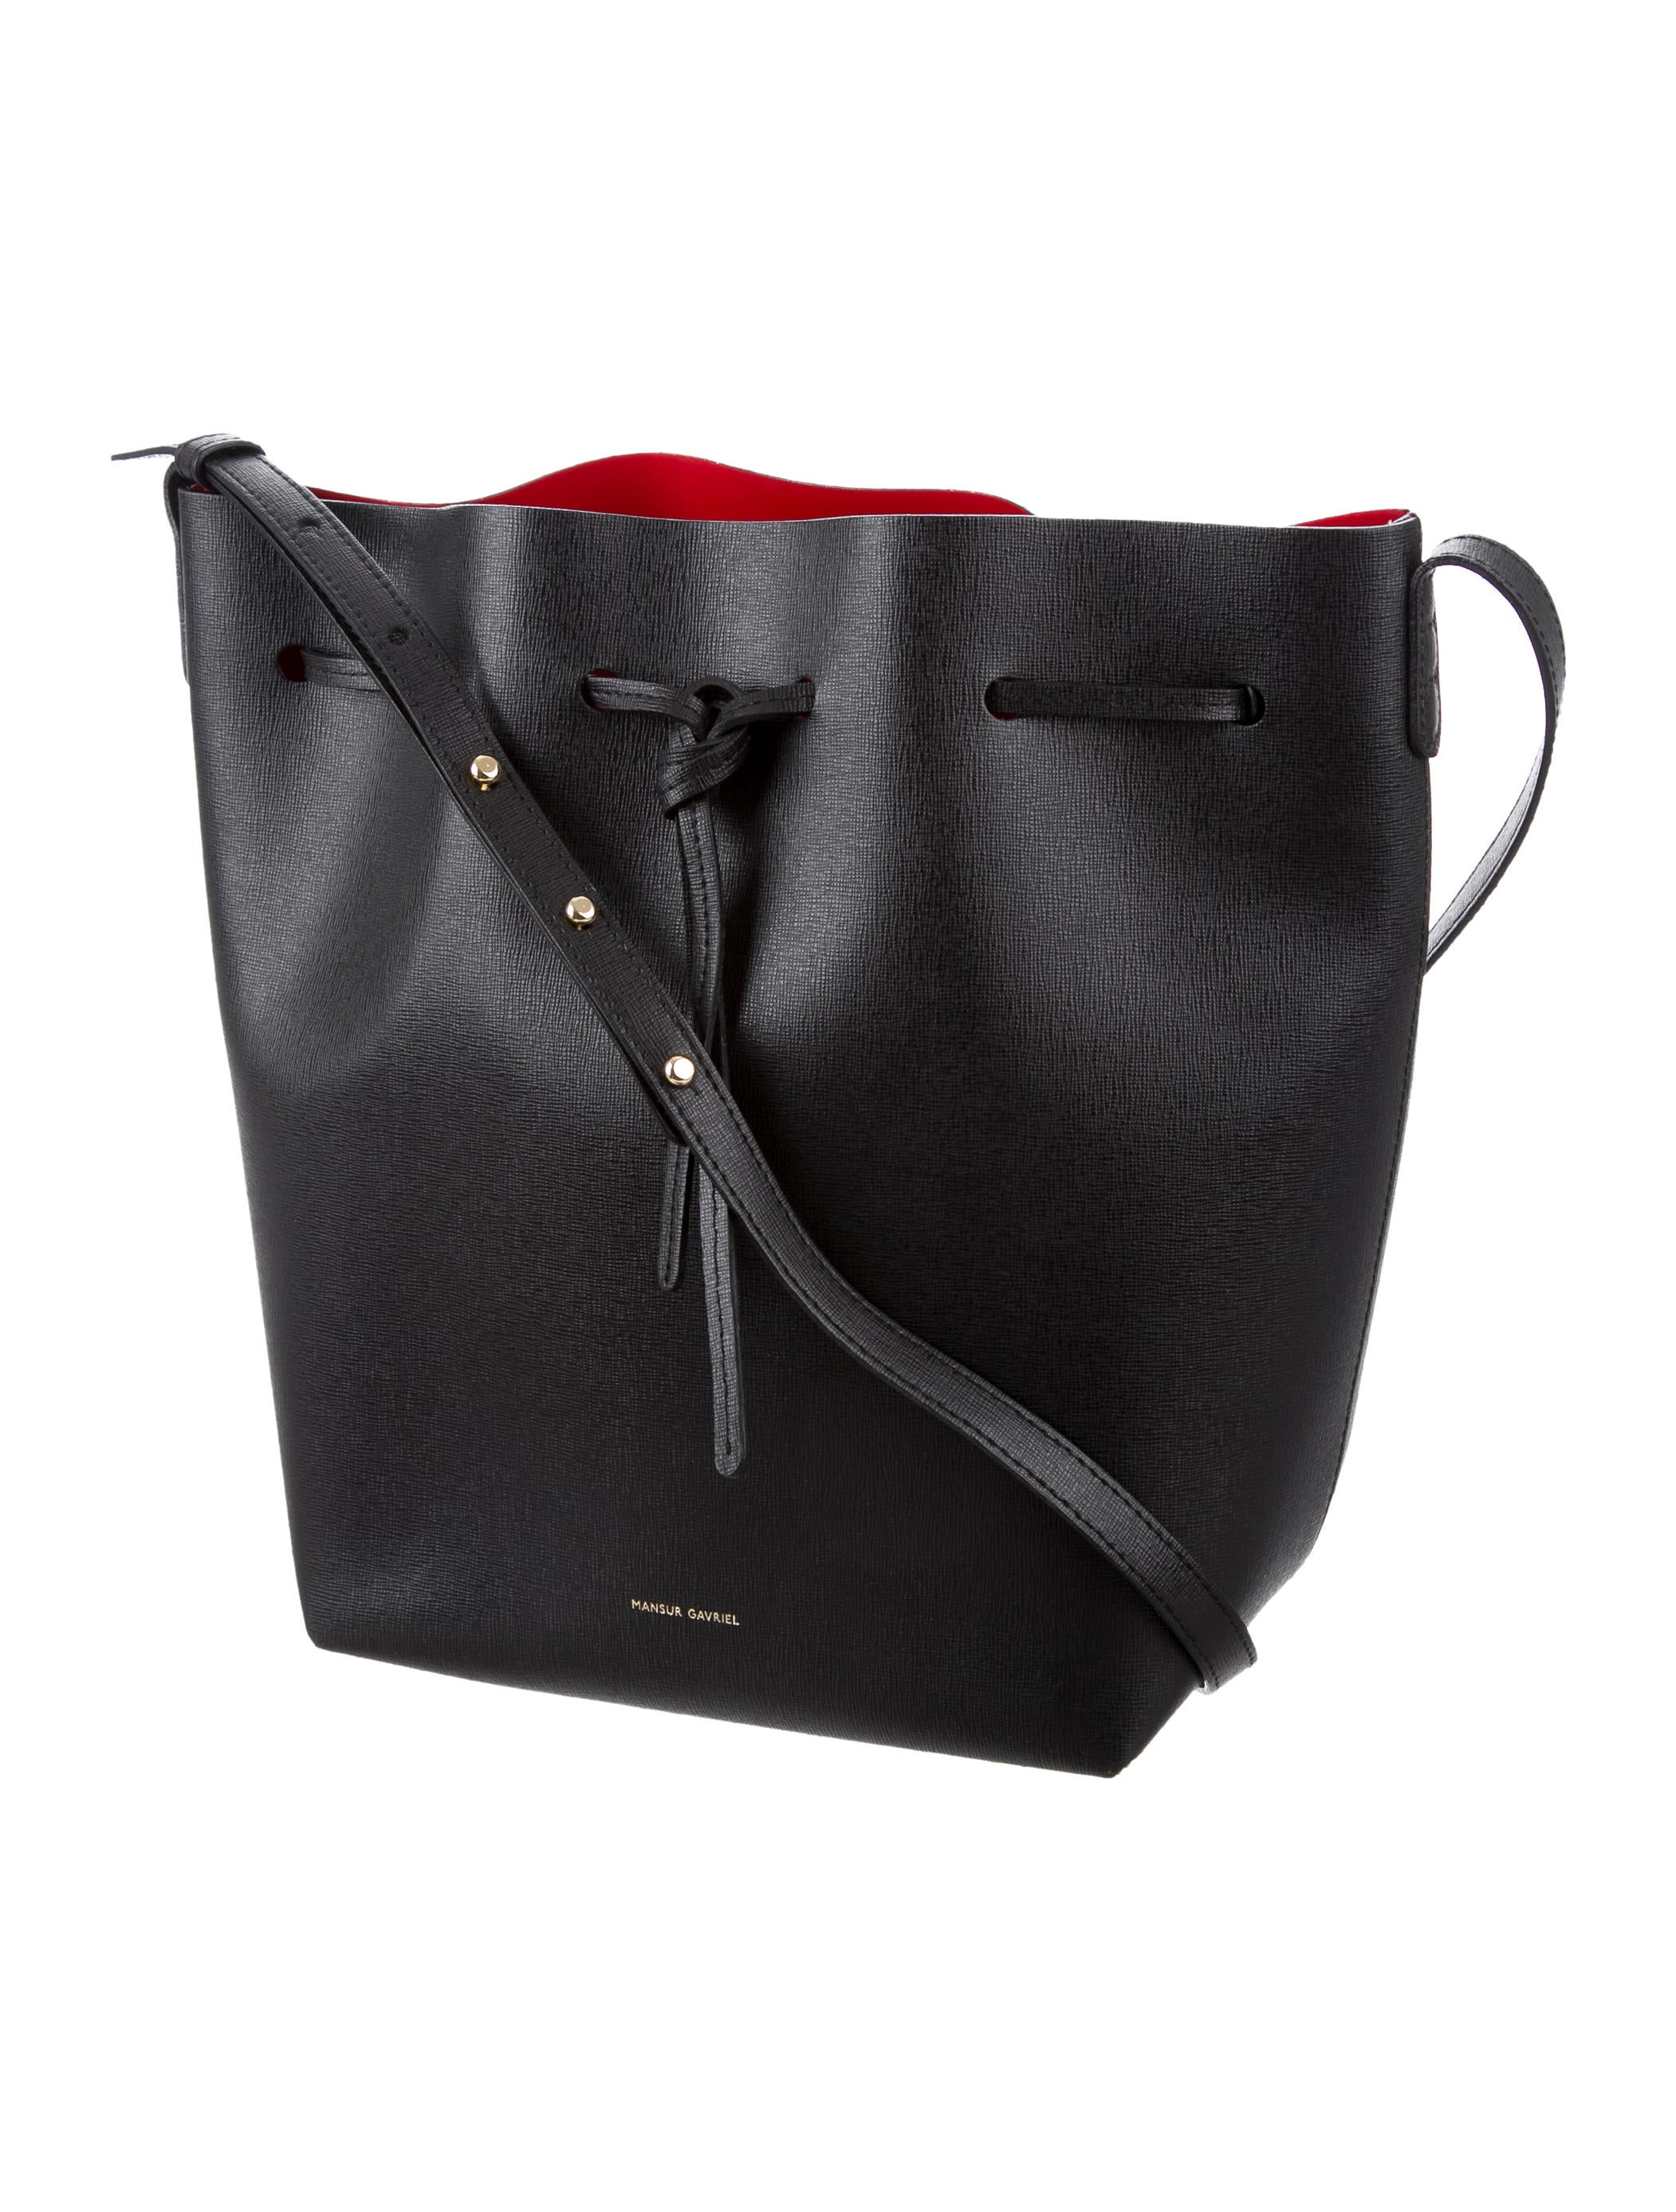 mansur gavriel saffiano bucket bag handbags wgy21589. Black Bedroom Furniture Sets. Home Design Ideas